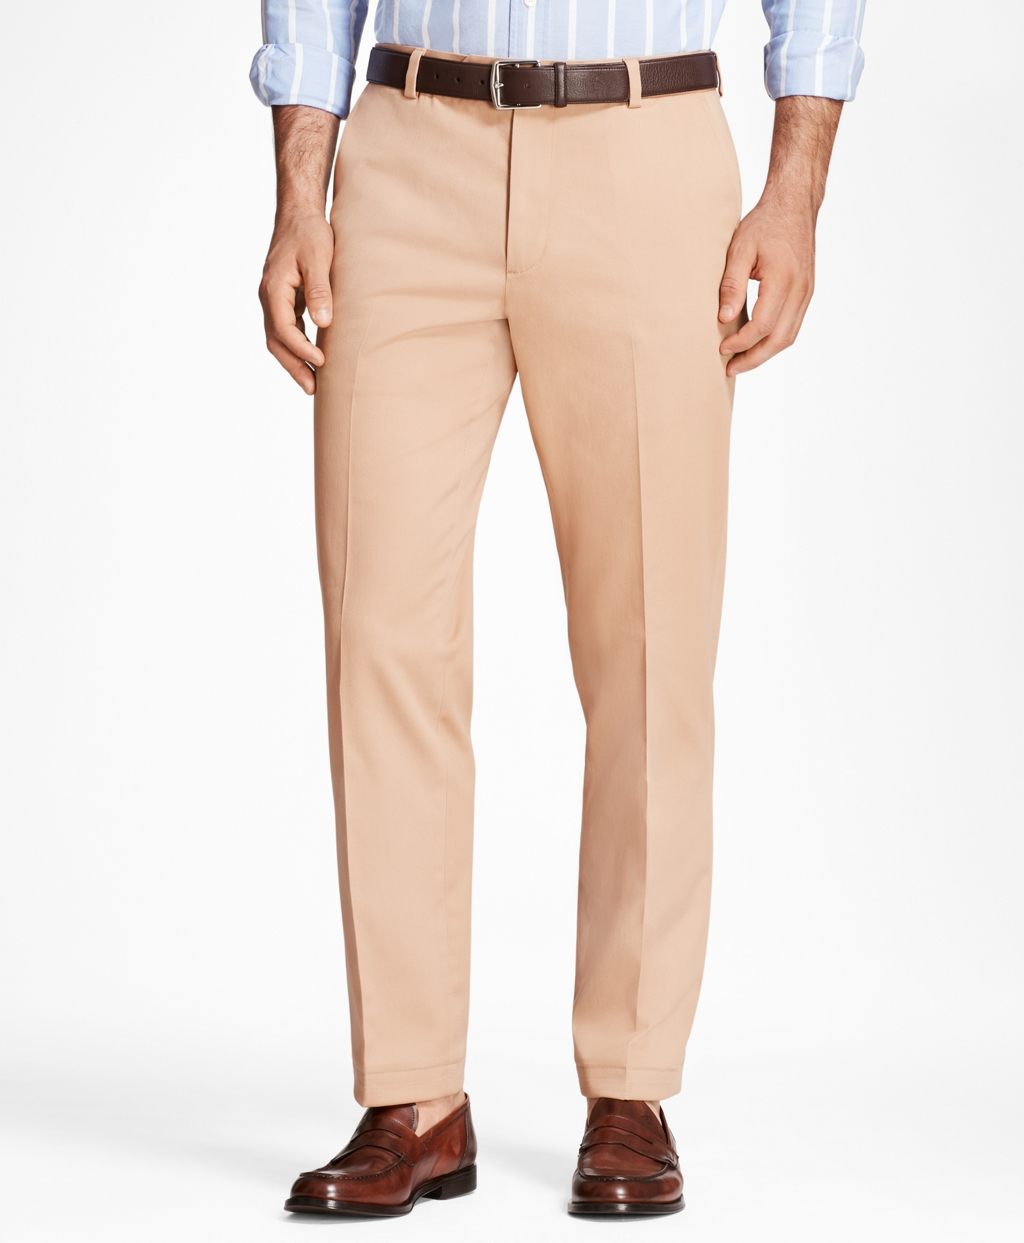 Clearance Cost TROUSERS - Casual trousers Be For Milano Cheapest Price Sale Online With Mastercard Cheap Online 2ZwkAKV